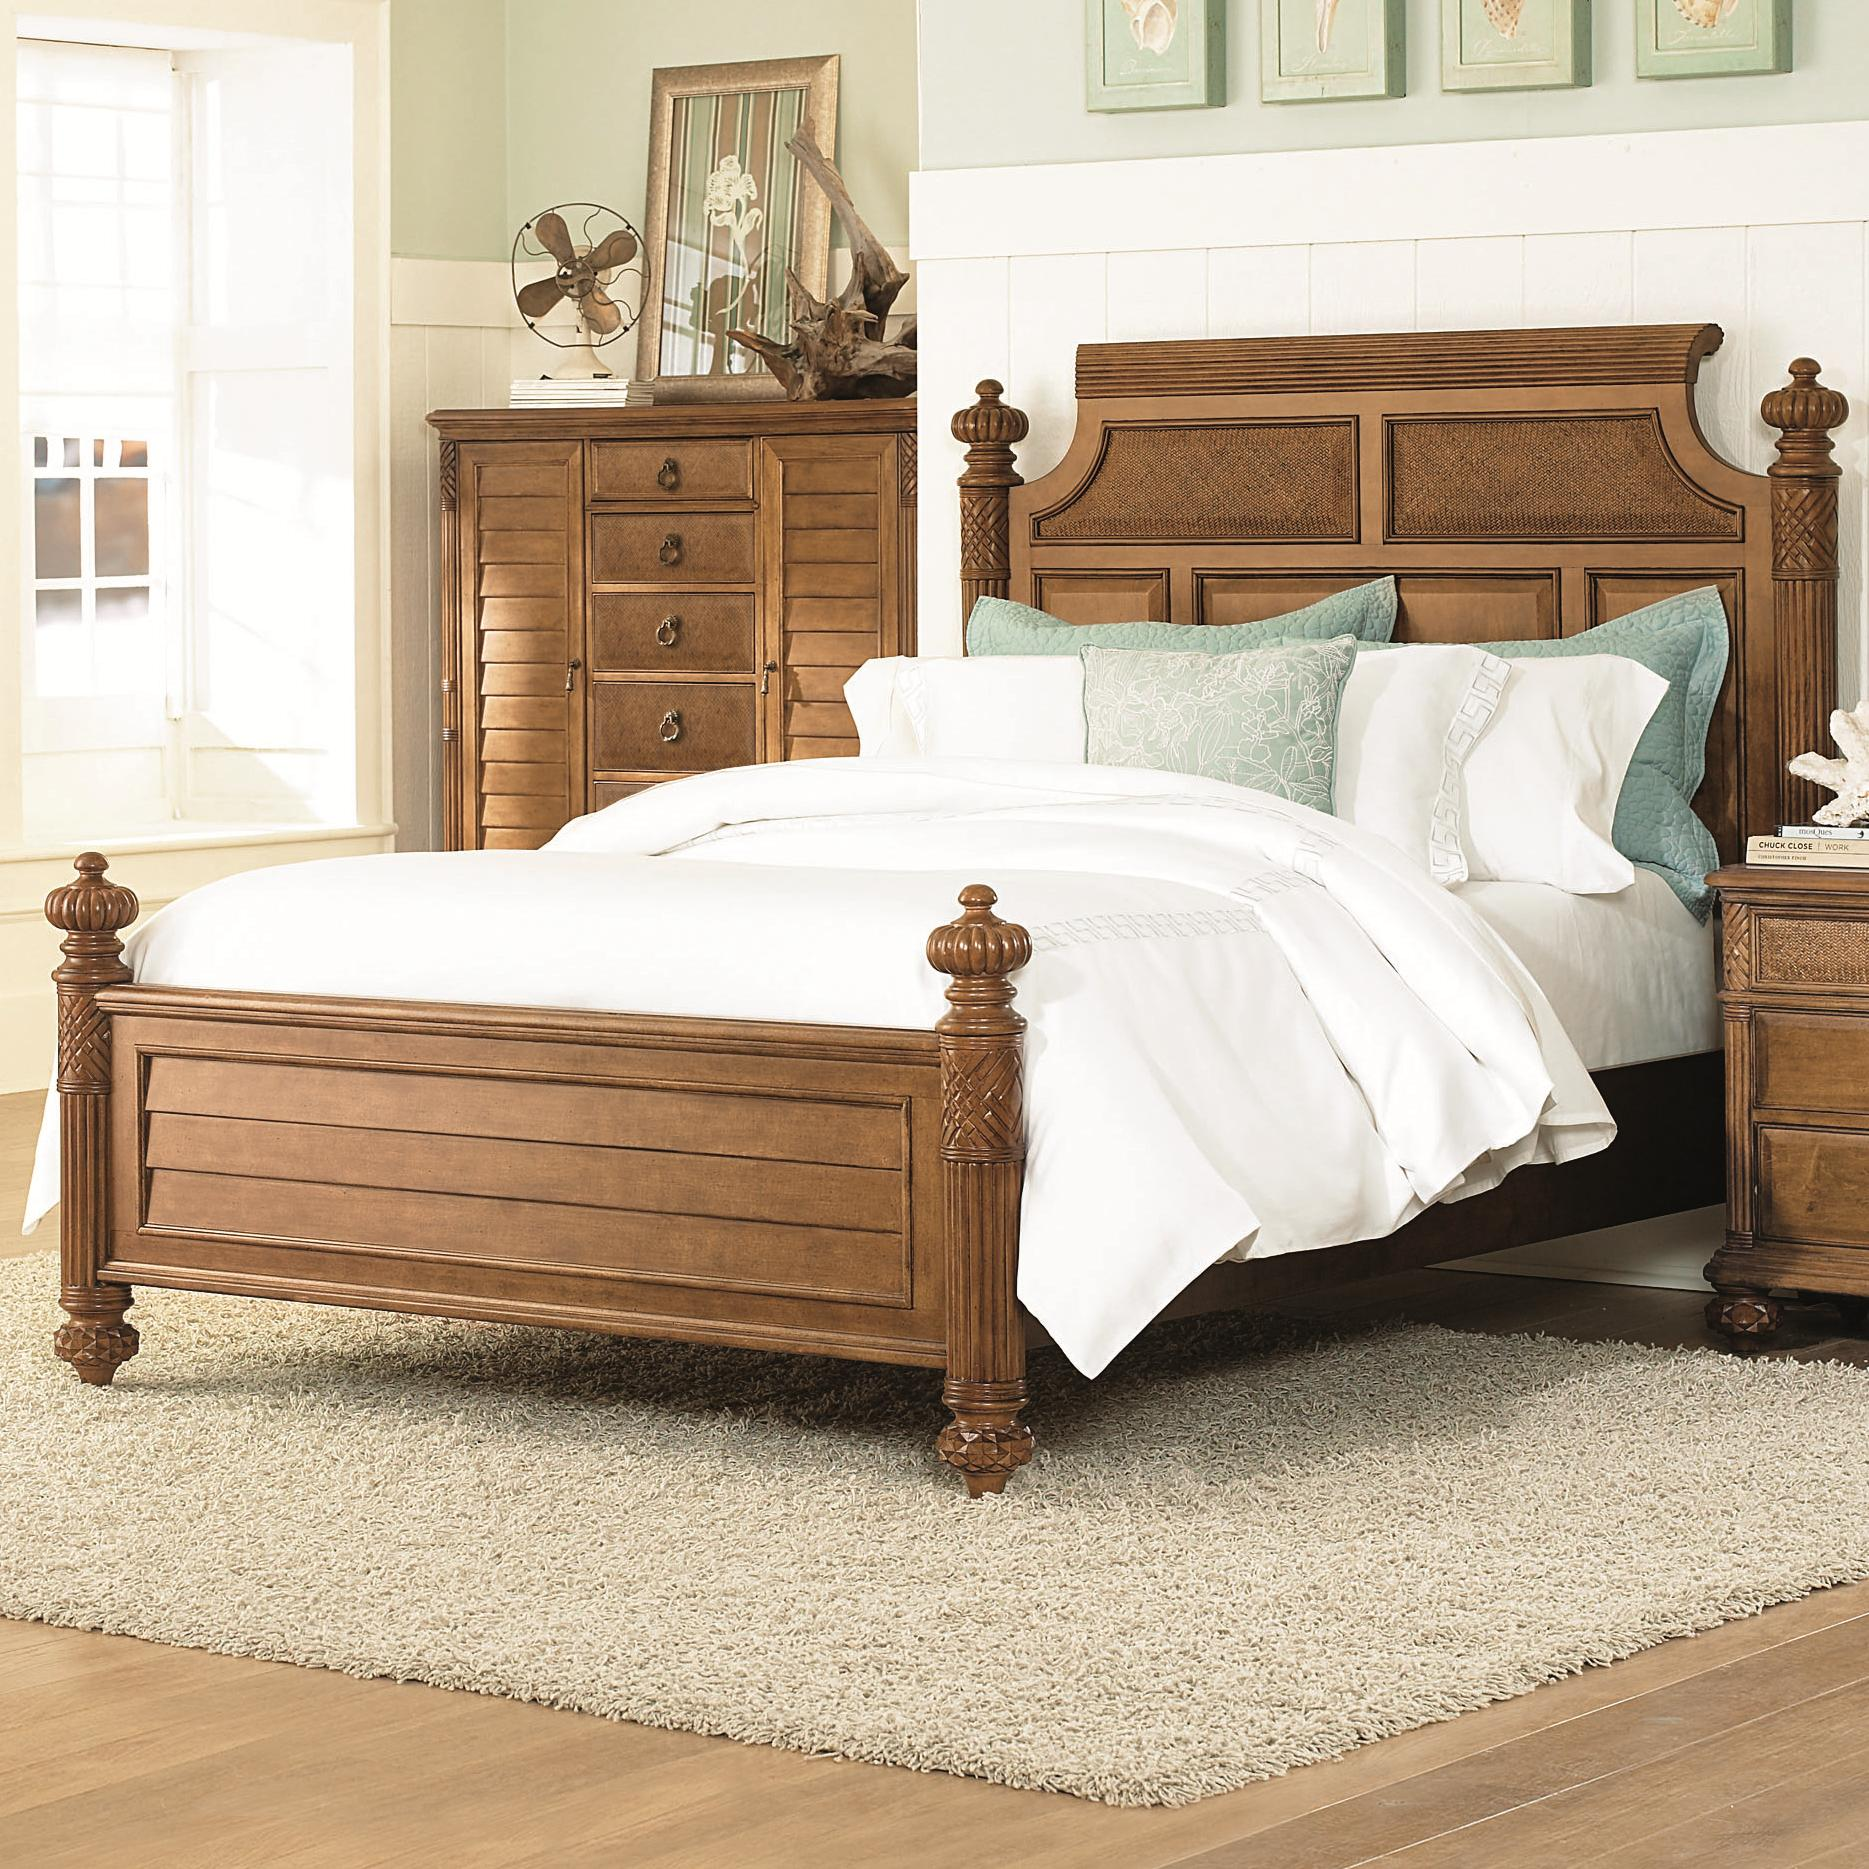 American Drew Grand Isle King Island Bed - Item Number: 079-316R